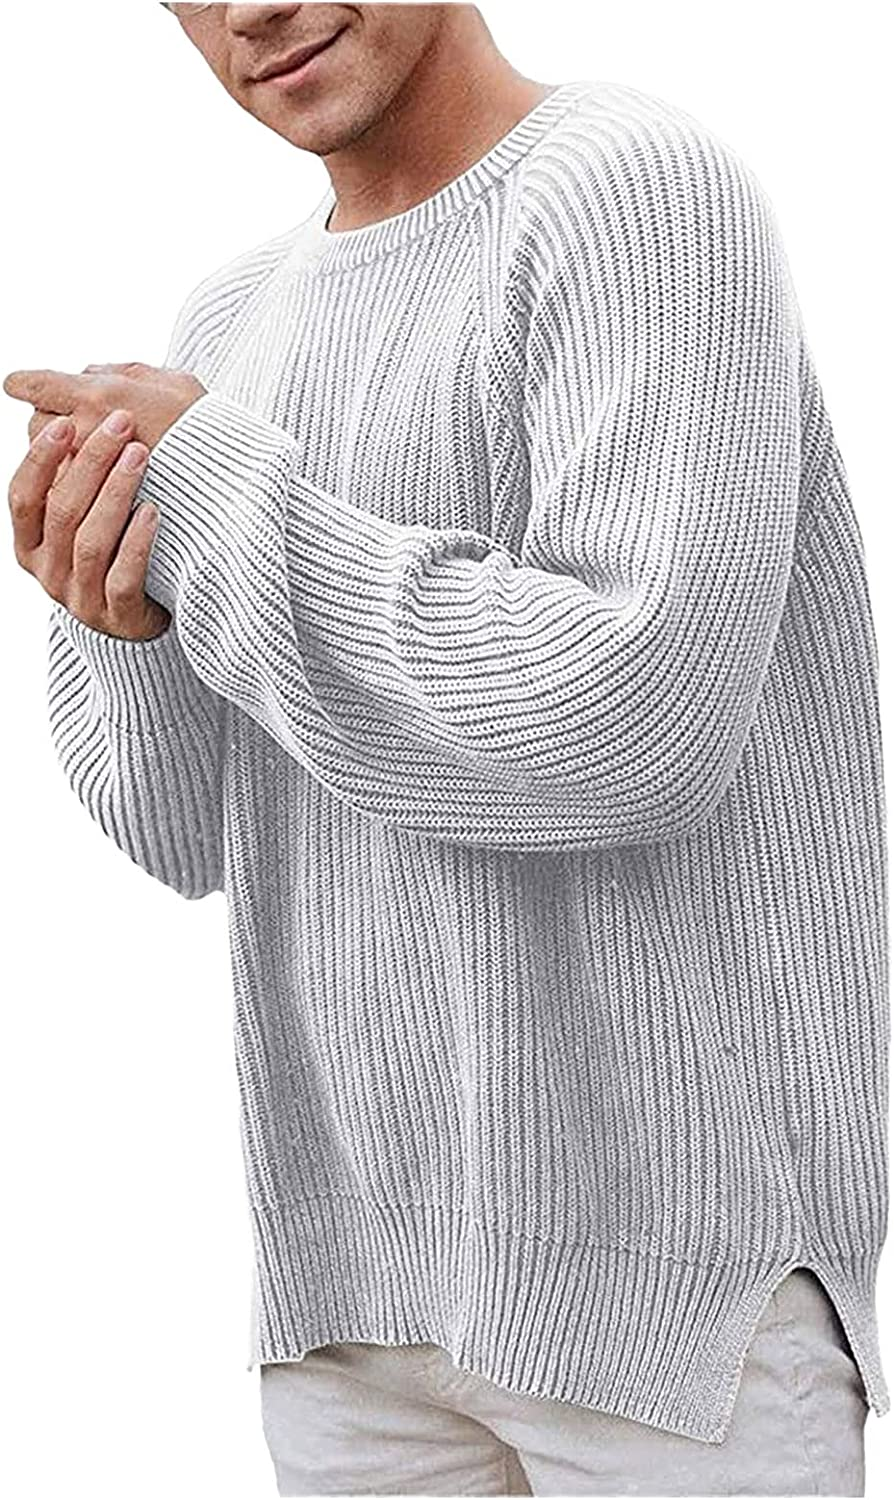 2021 Men's Autumn And Winter O Neck Long Sleeve Pullover Solid Cardigan Sweater Blouse